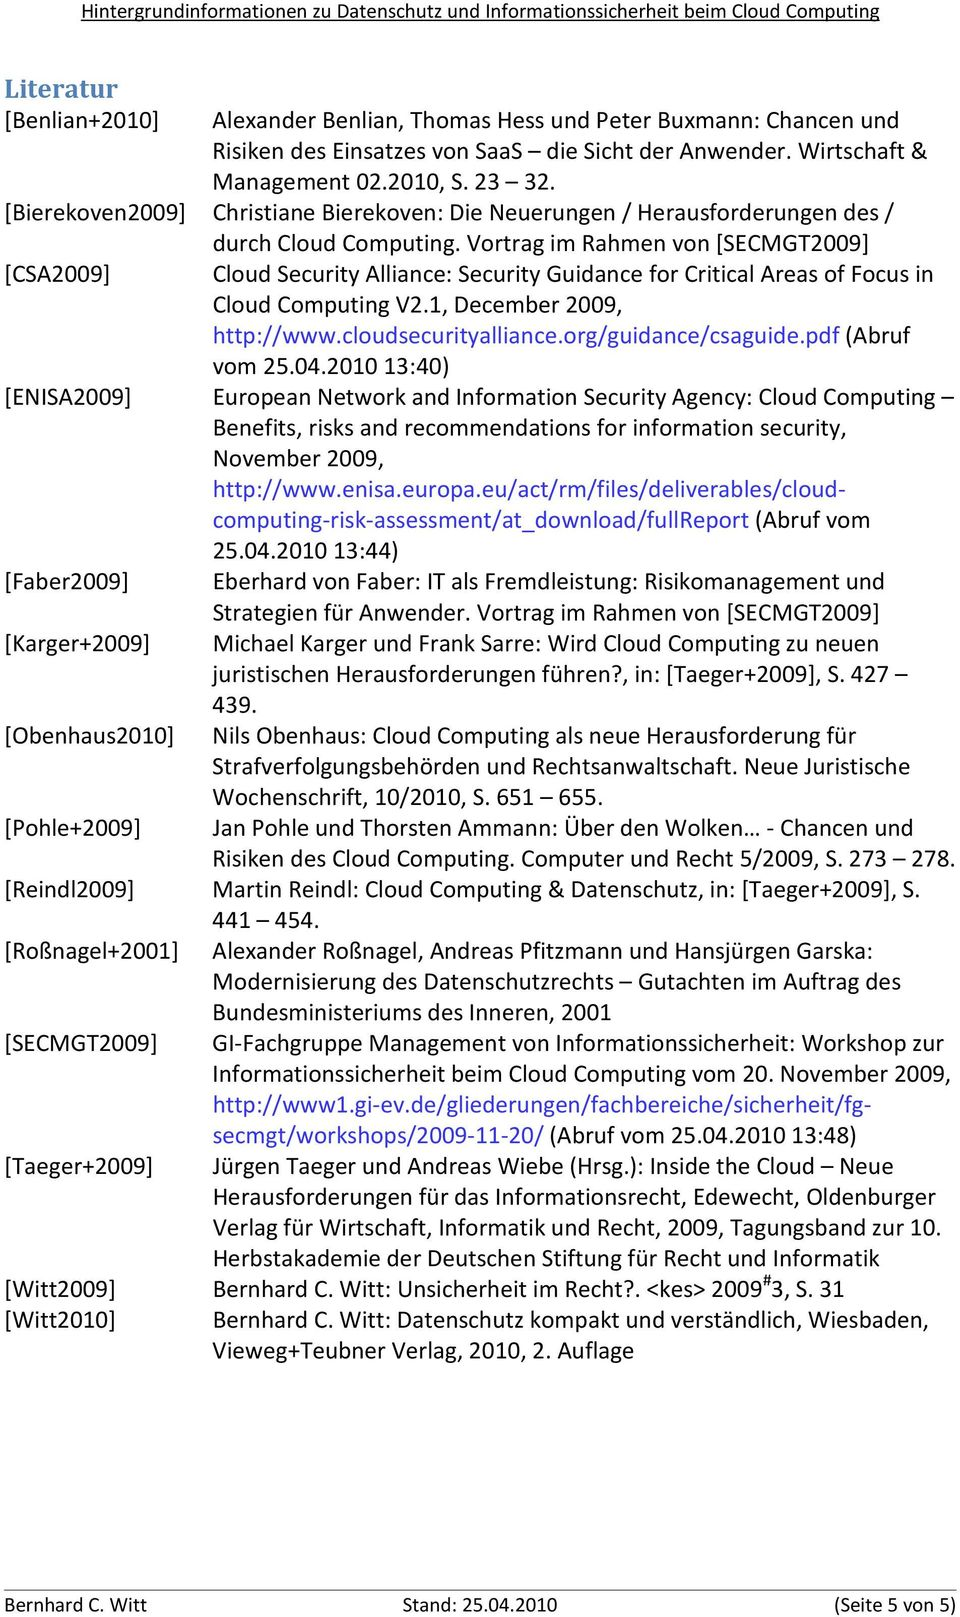 Vortrag im Rahmen von [SECMGT2009] Cloud Security Alliance: Security Guidance for Critical Areas of Focus in Cloud Computing V2.1, December 2009, http://www.cloudsecurityalliance.